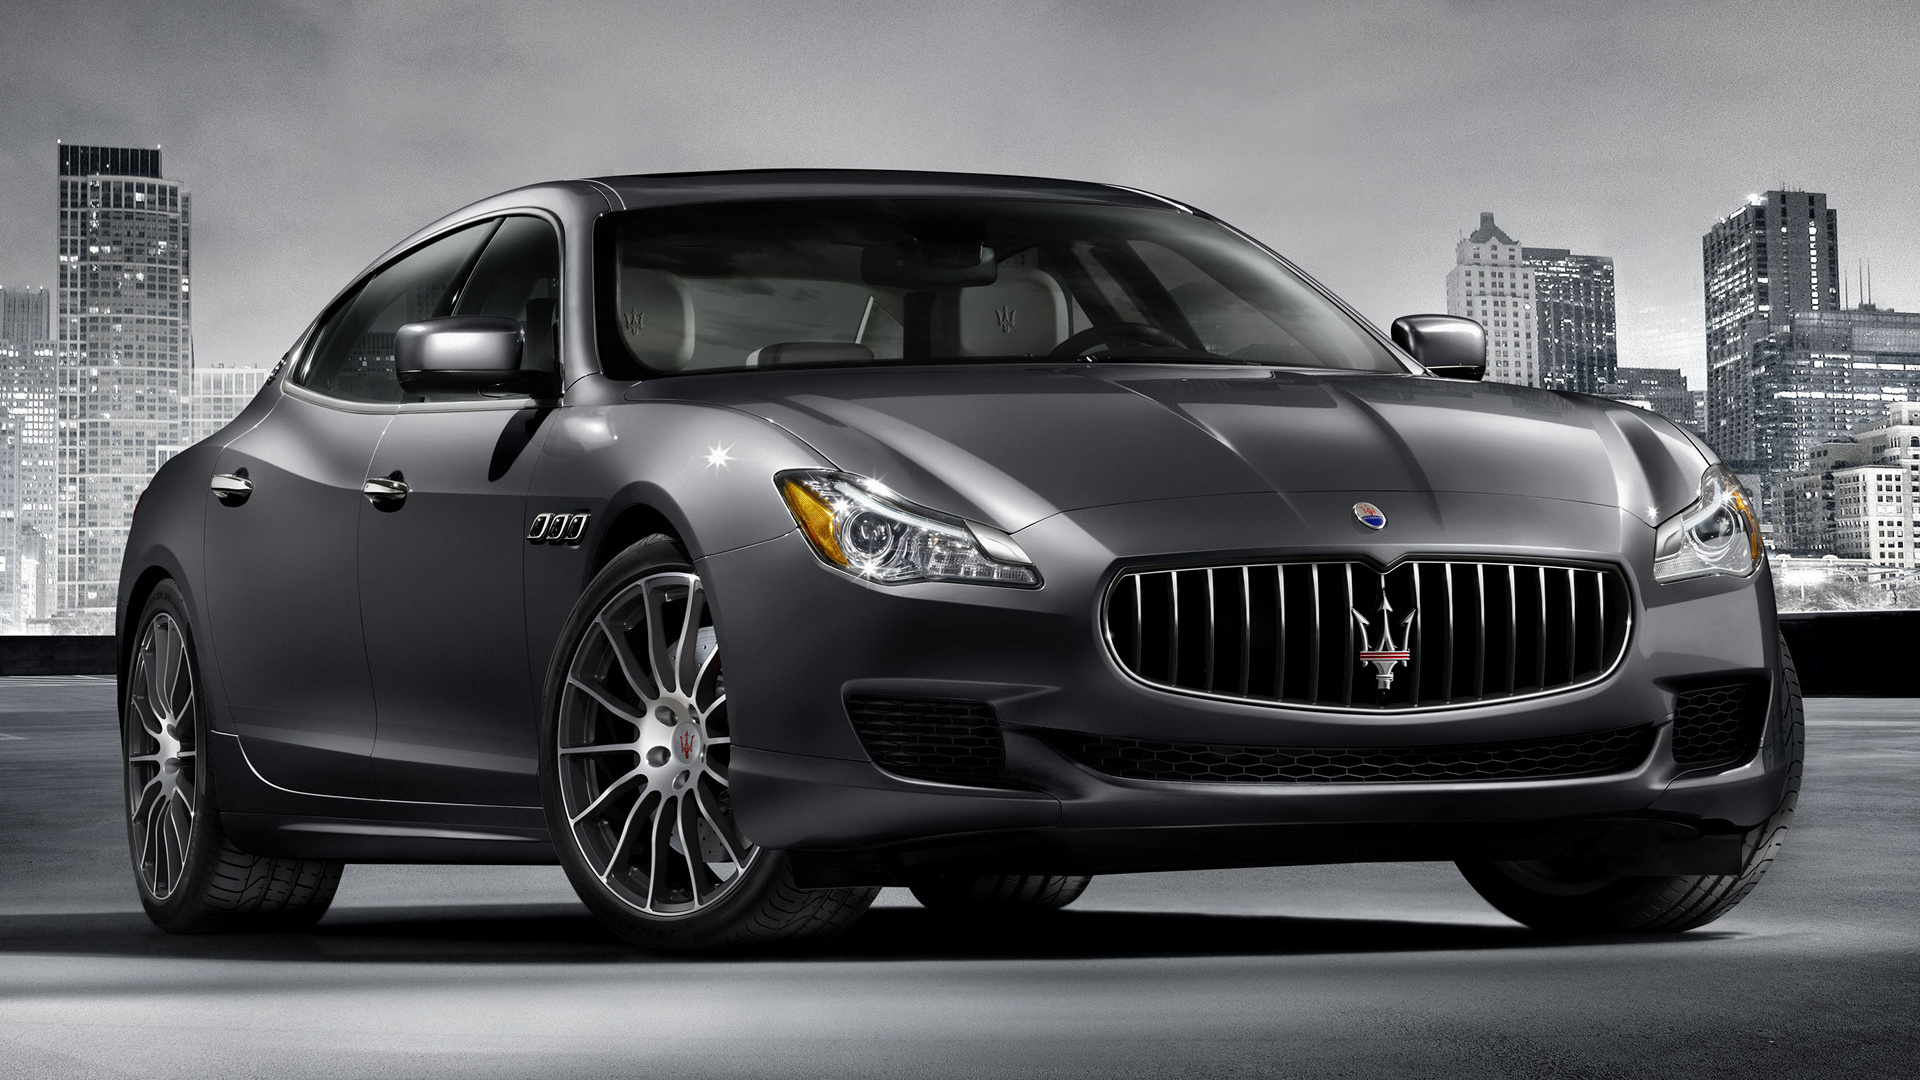 maserati quattroporte gts 2013 wallpapers and hd images car pixel. Black Bedroom Furniture Sets. Home Design Ideas